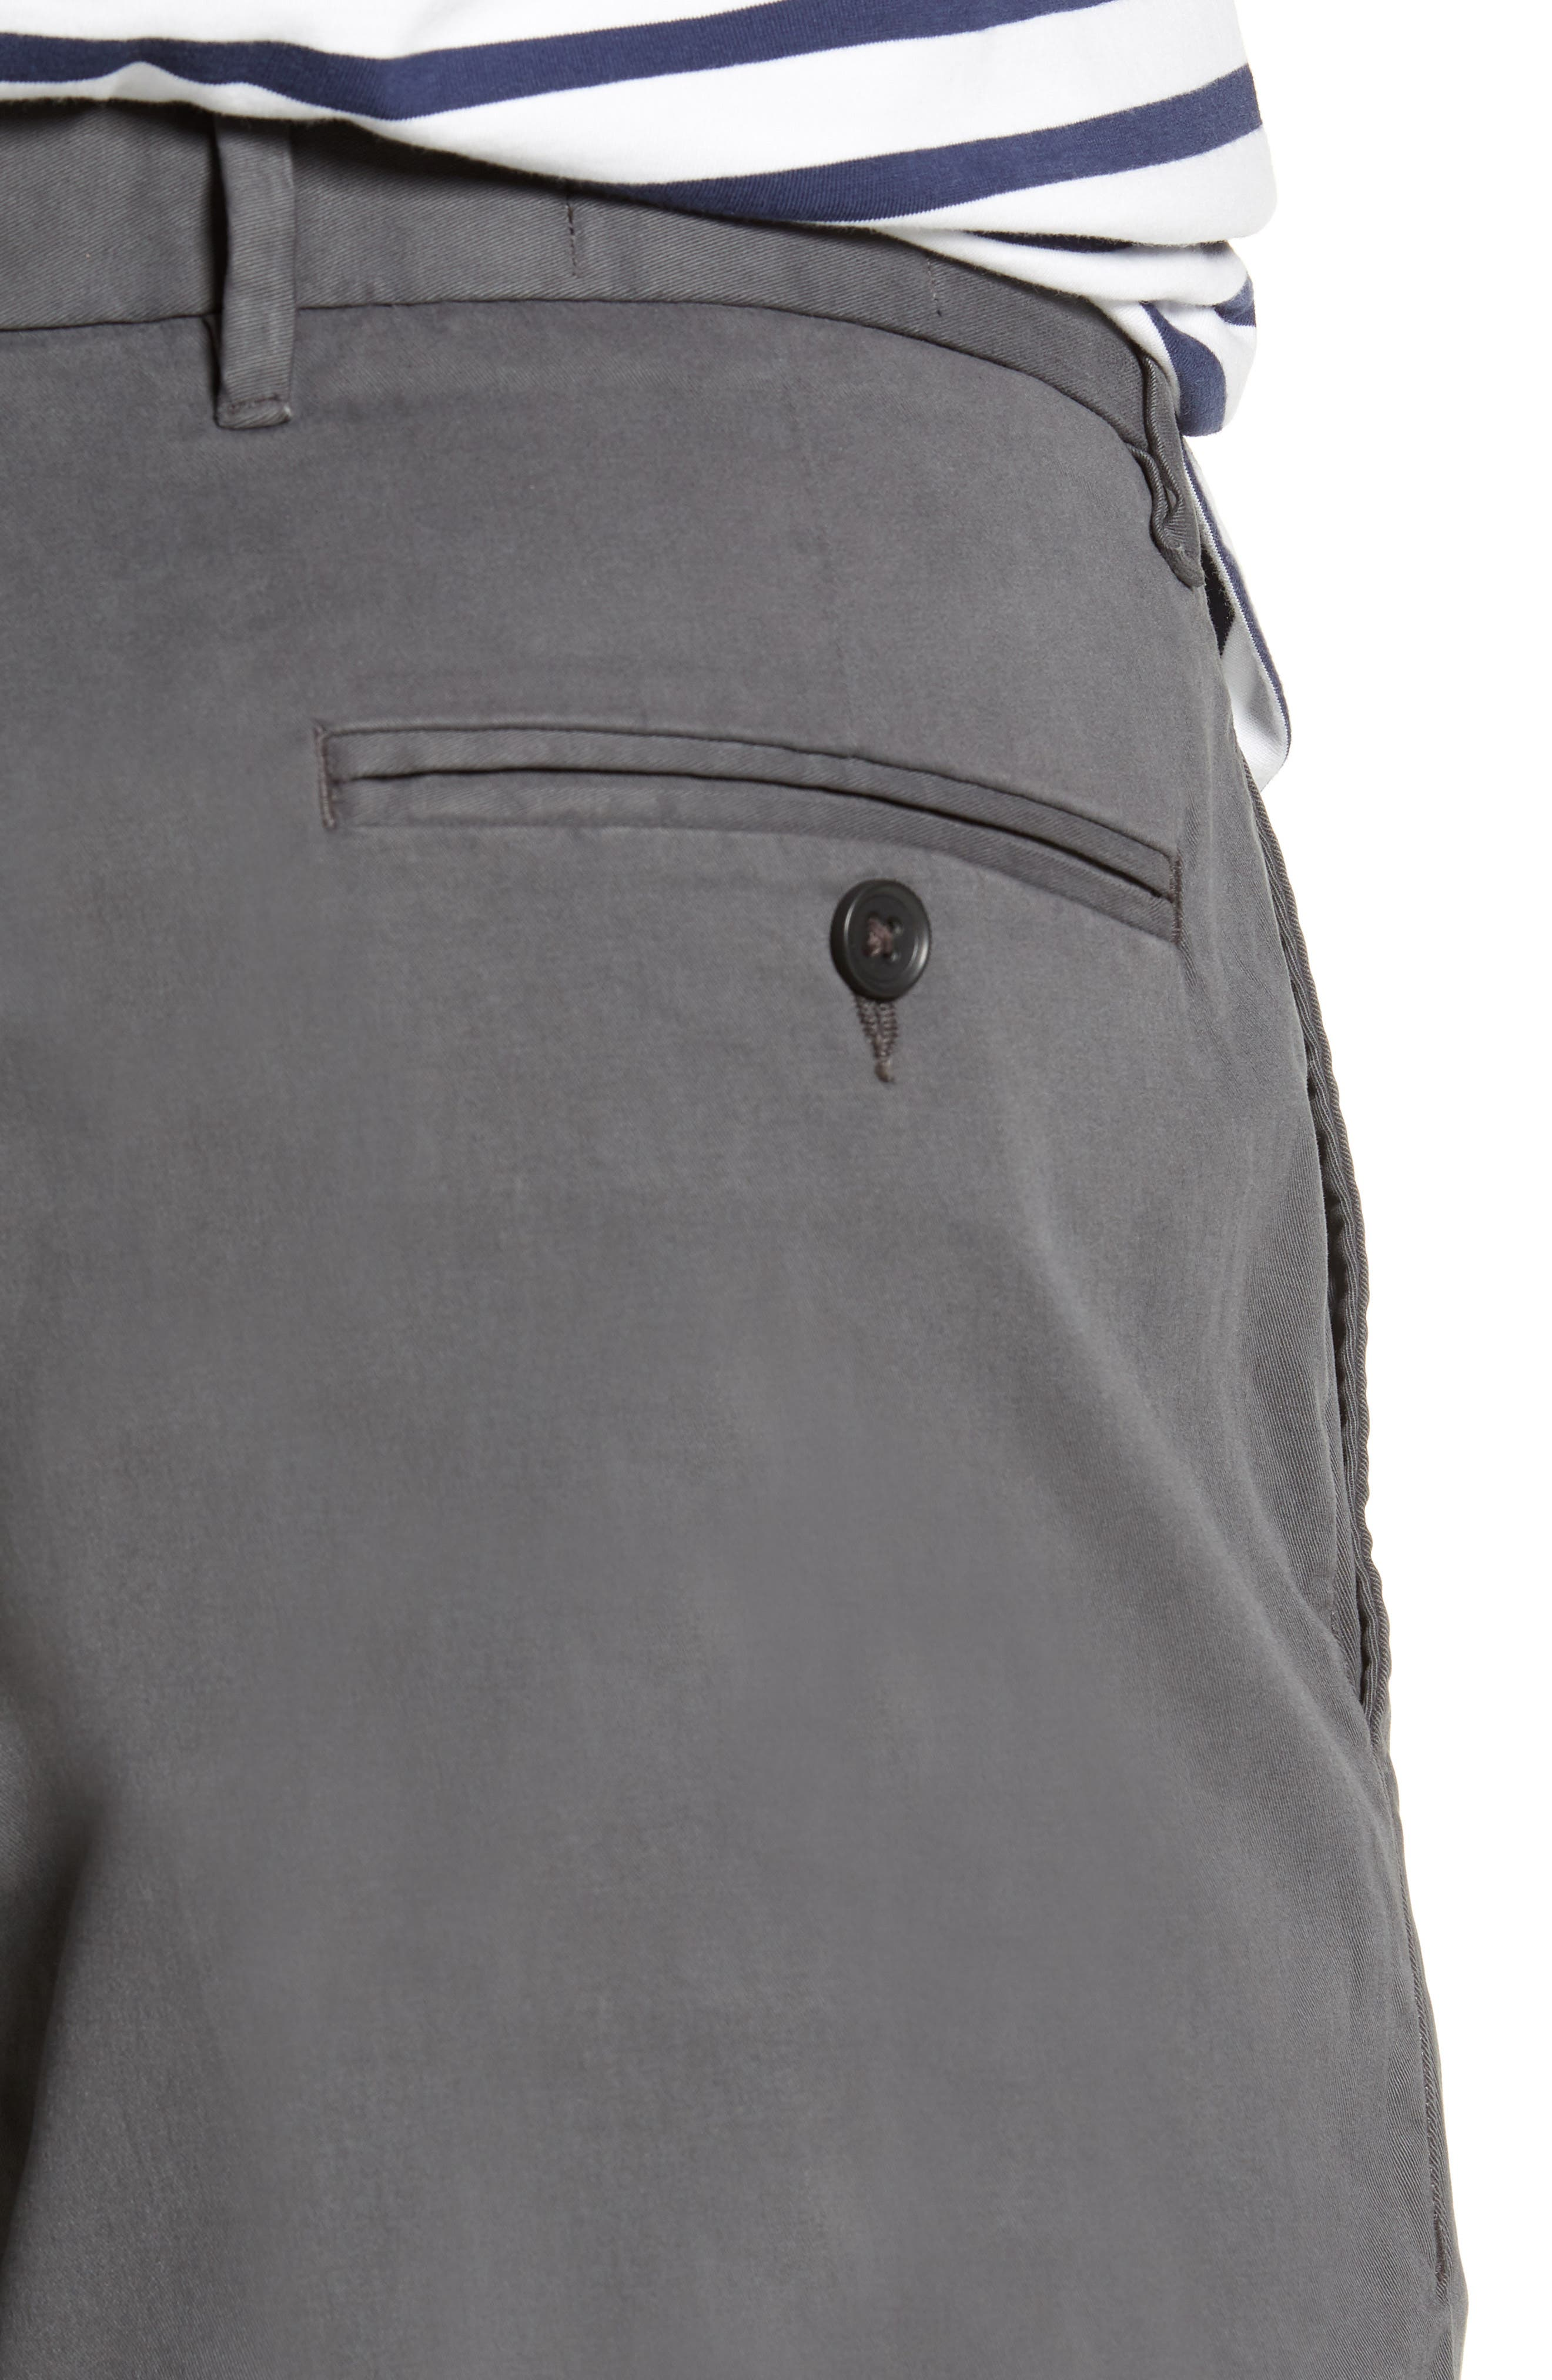 Fremont Flat Front Slim Fit Stretch Chino Pants,                             Alternate thumbnail 4, color,                             GREY ONYX